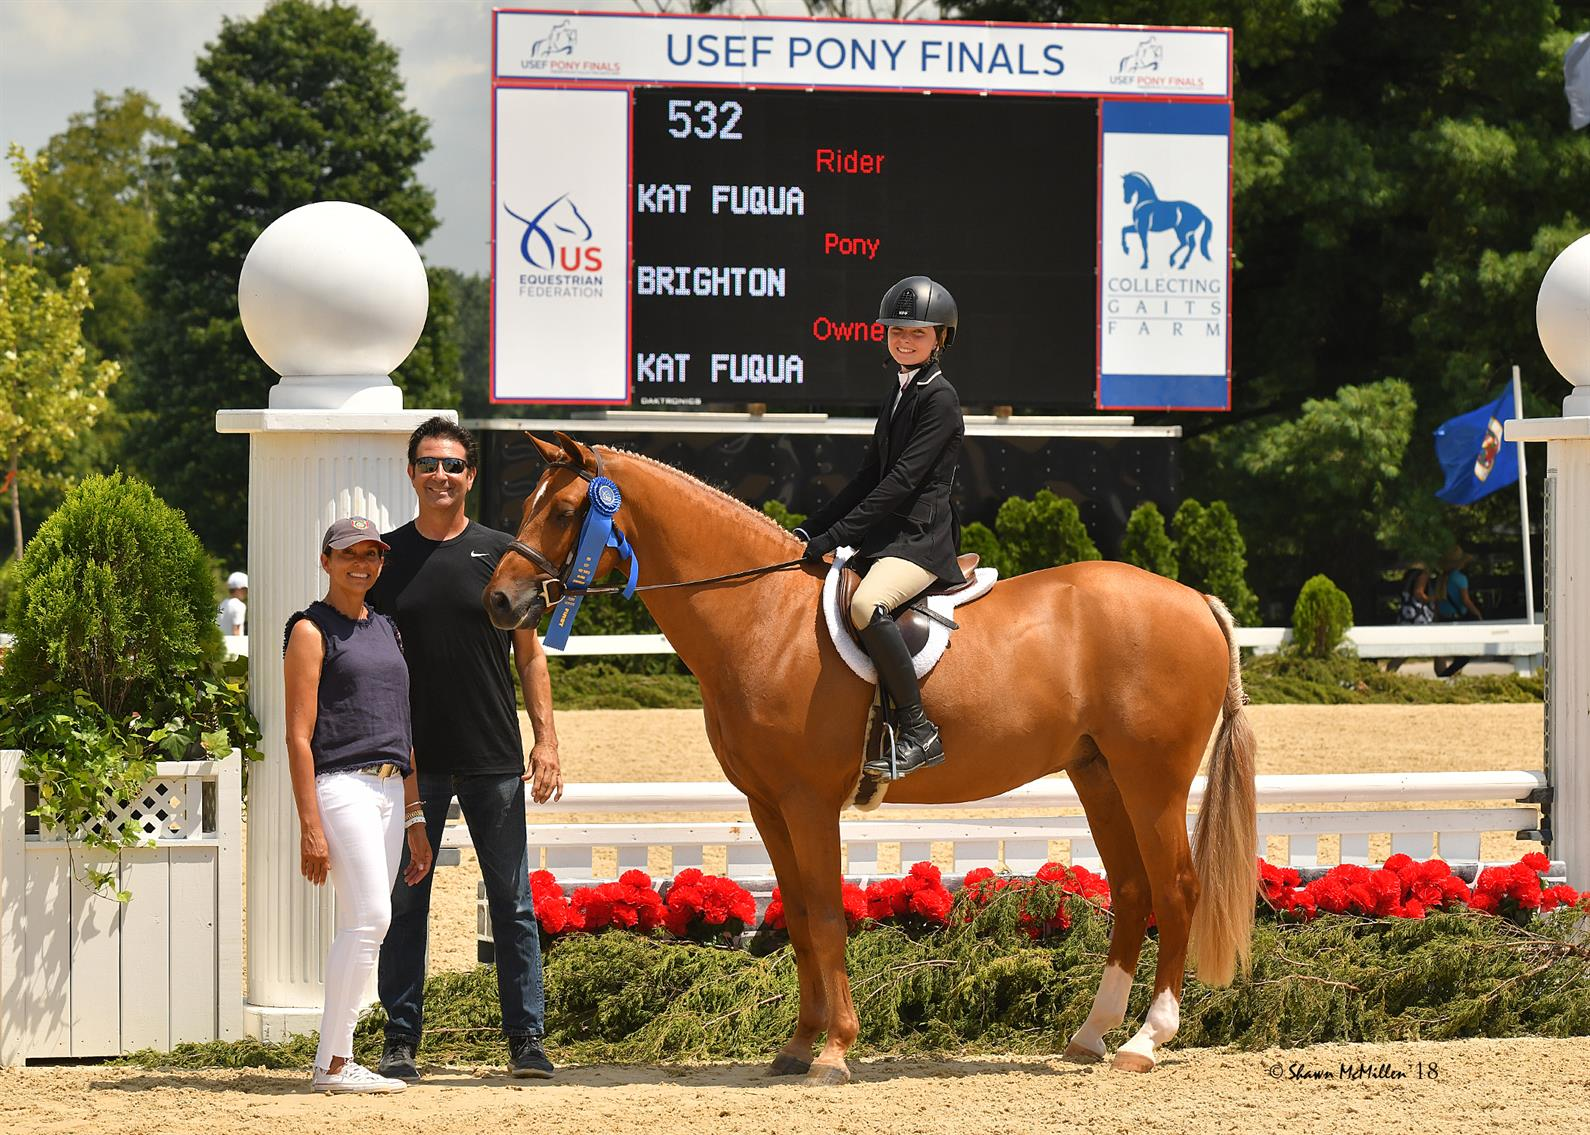 Day Two Of 2018 Usef Pony Finals Presented By Collecting